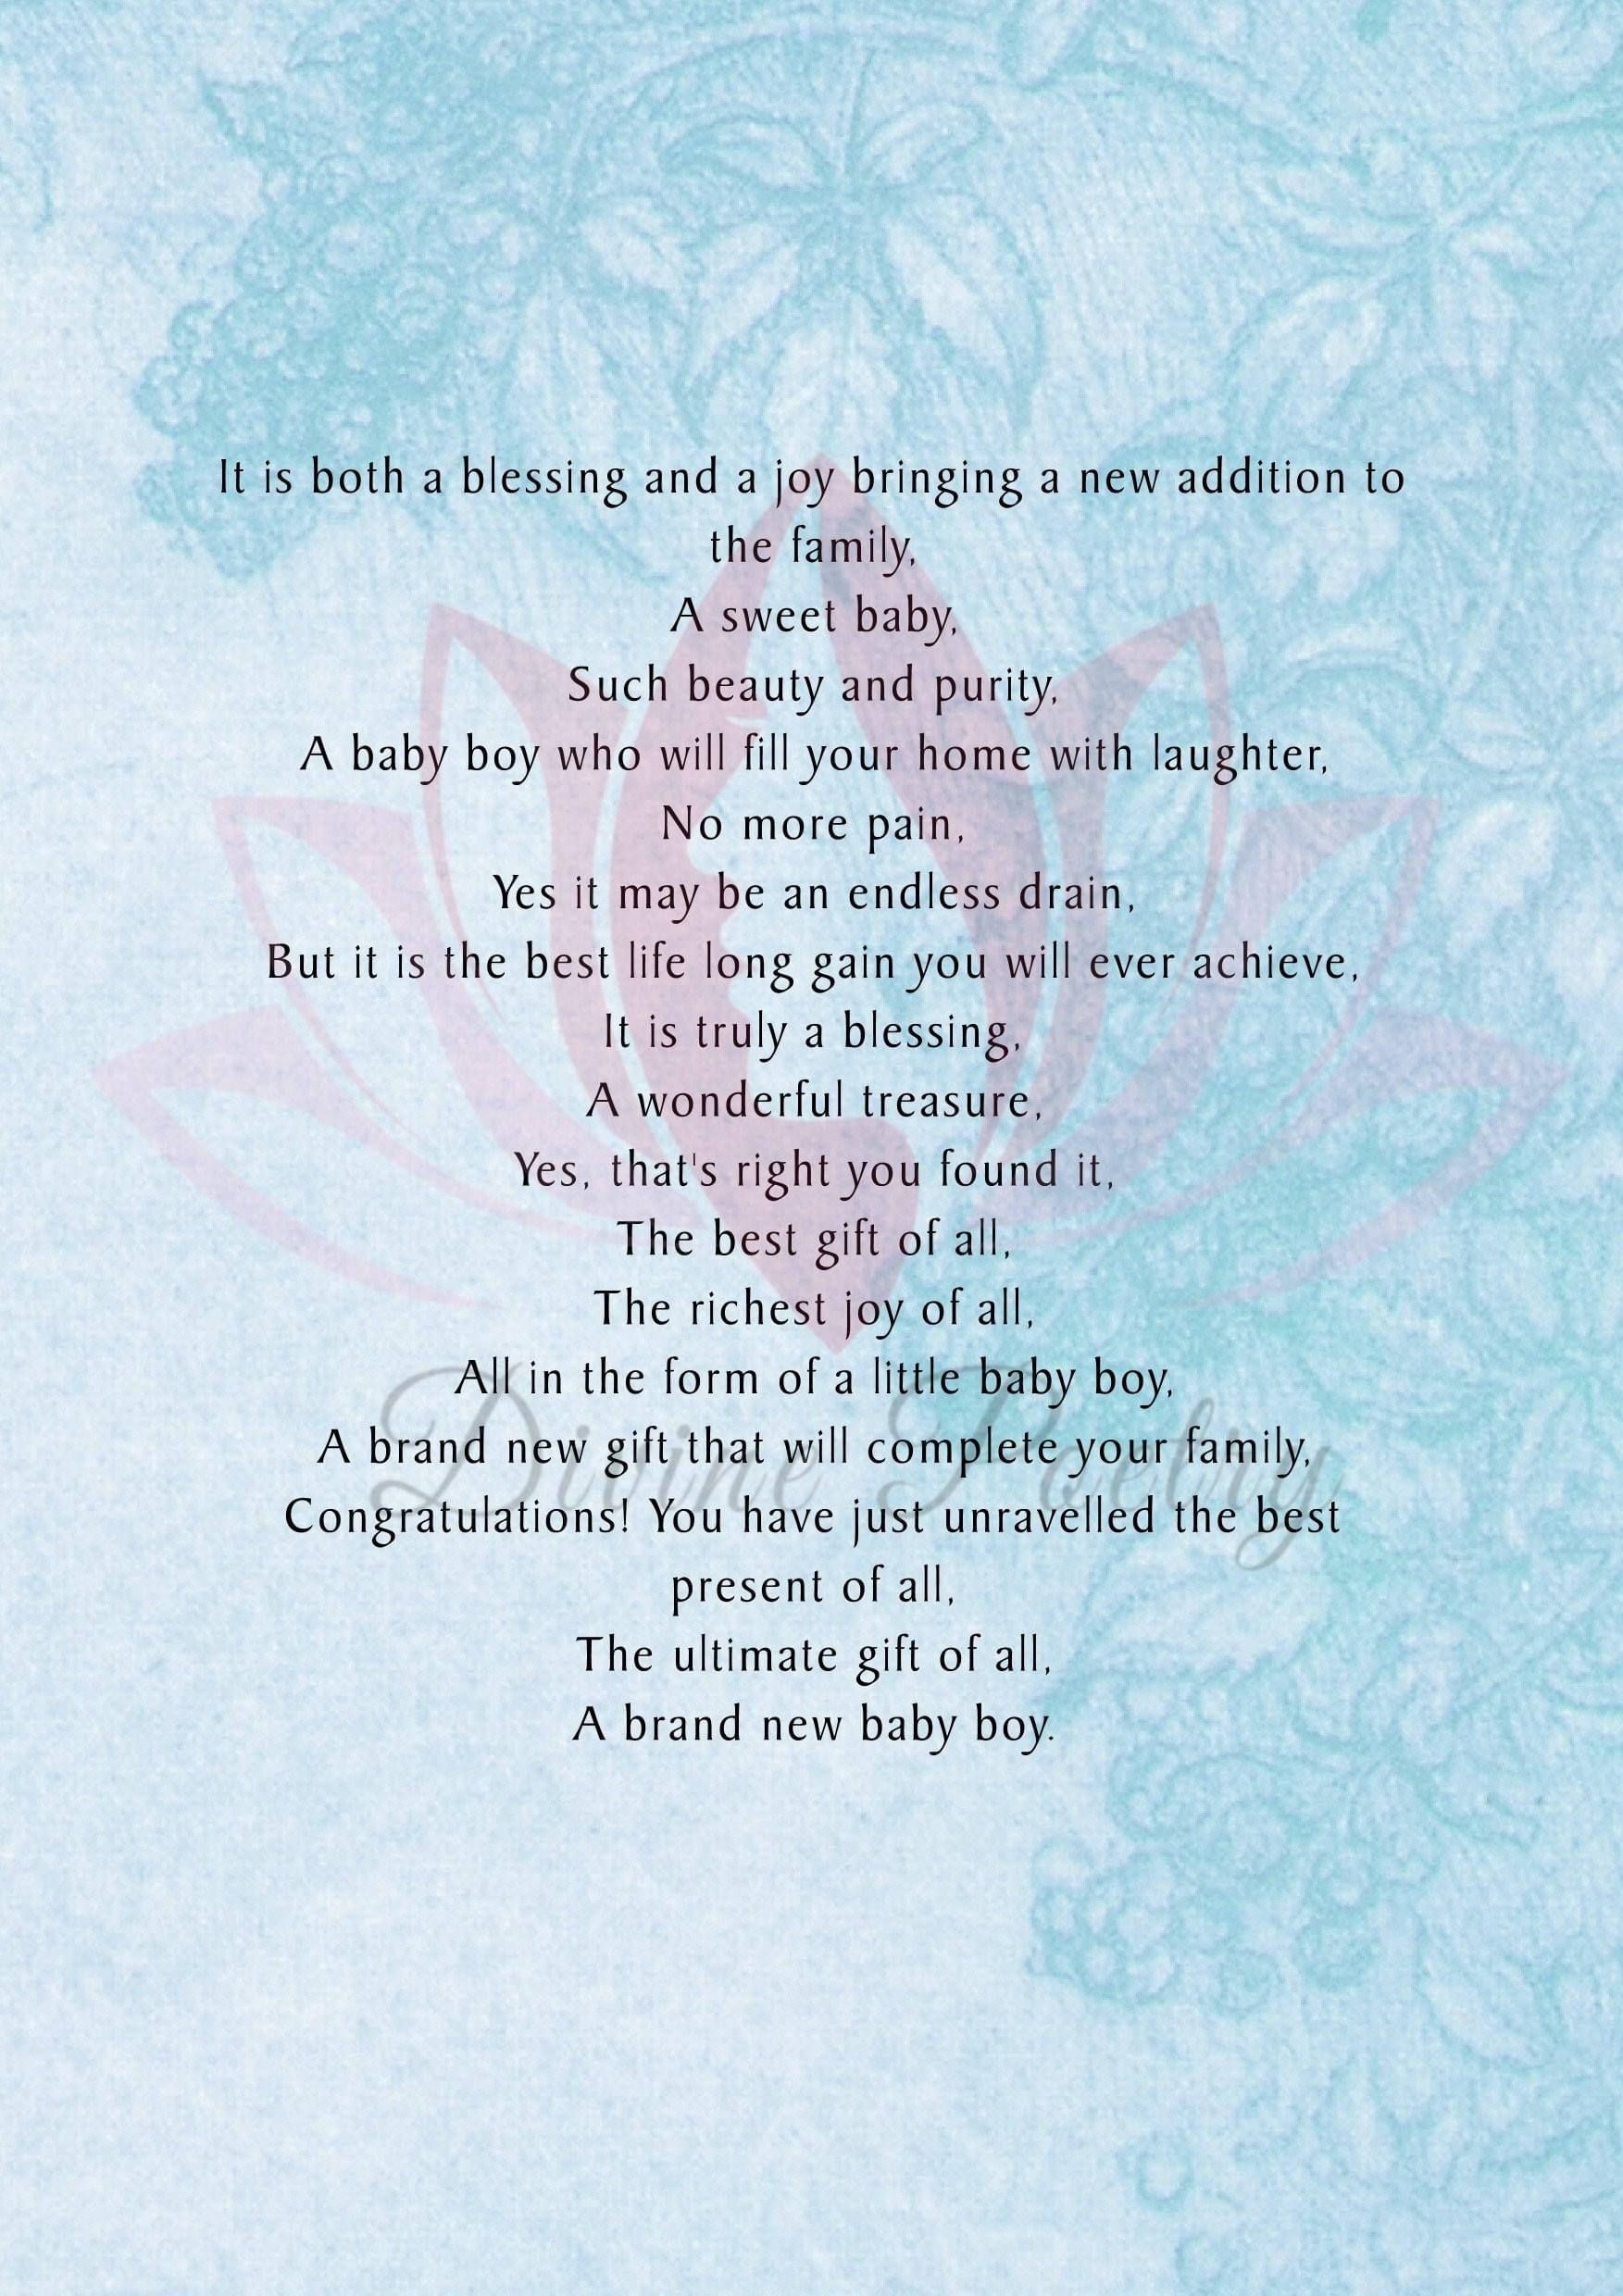 A Beautiful Little Son - Divine Poetry